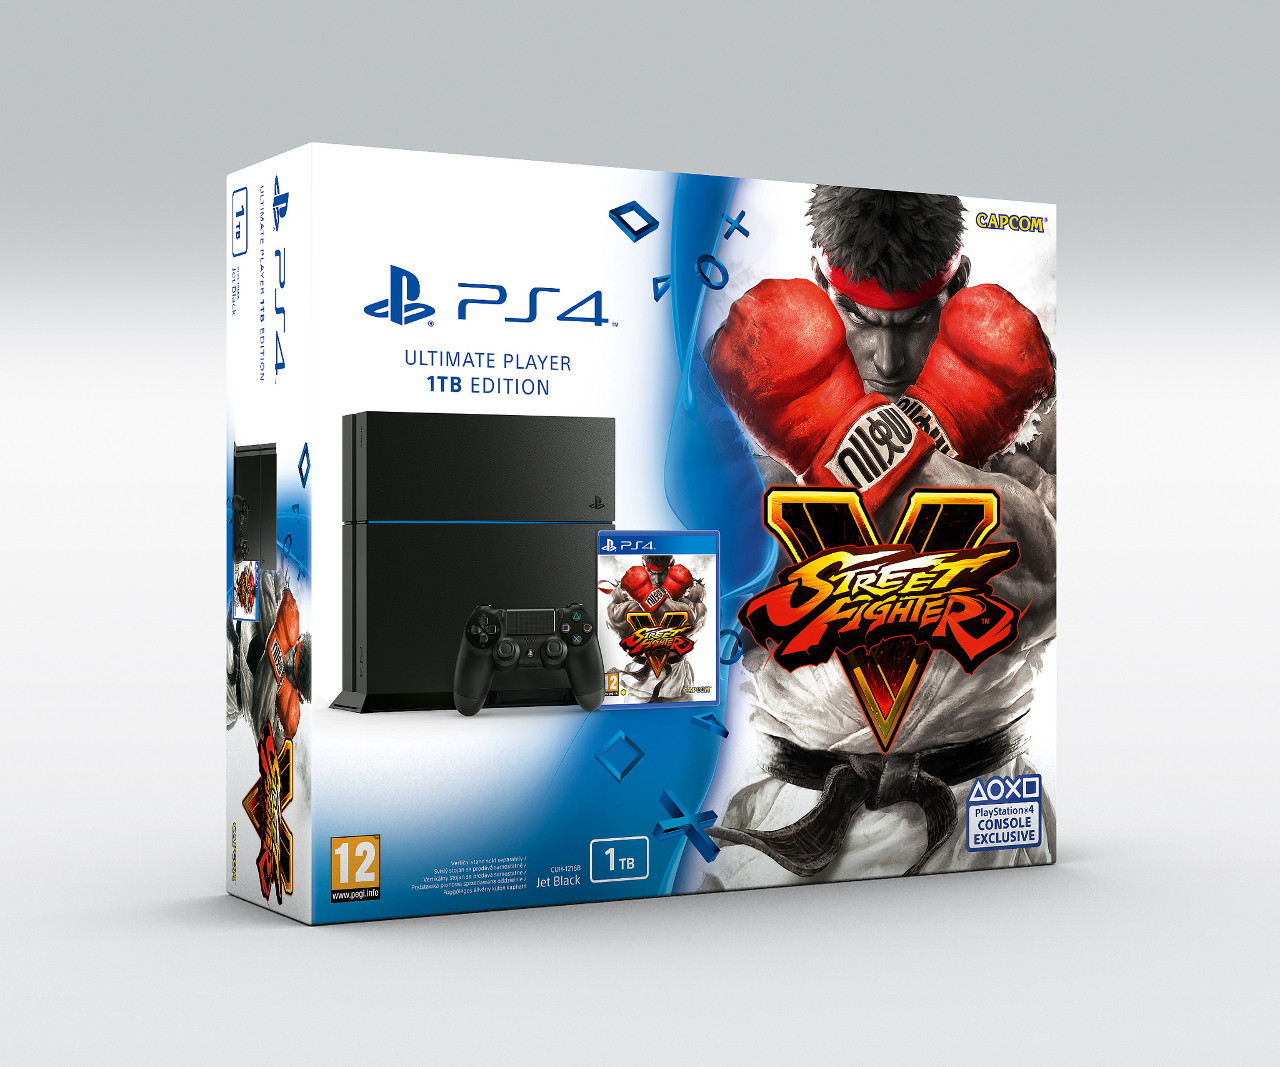 [In][n]Street-Fighter-v-ps4-bundle